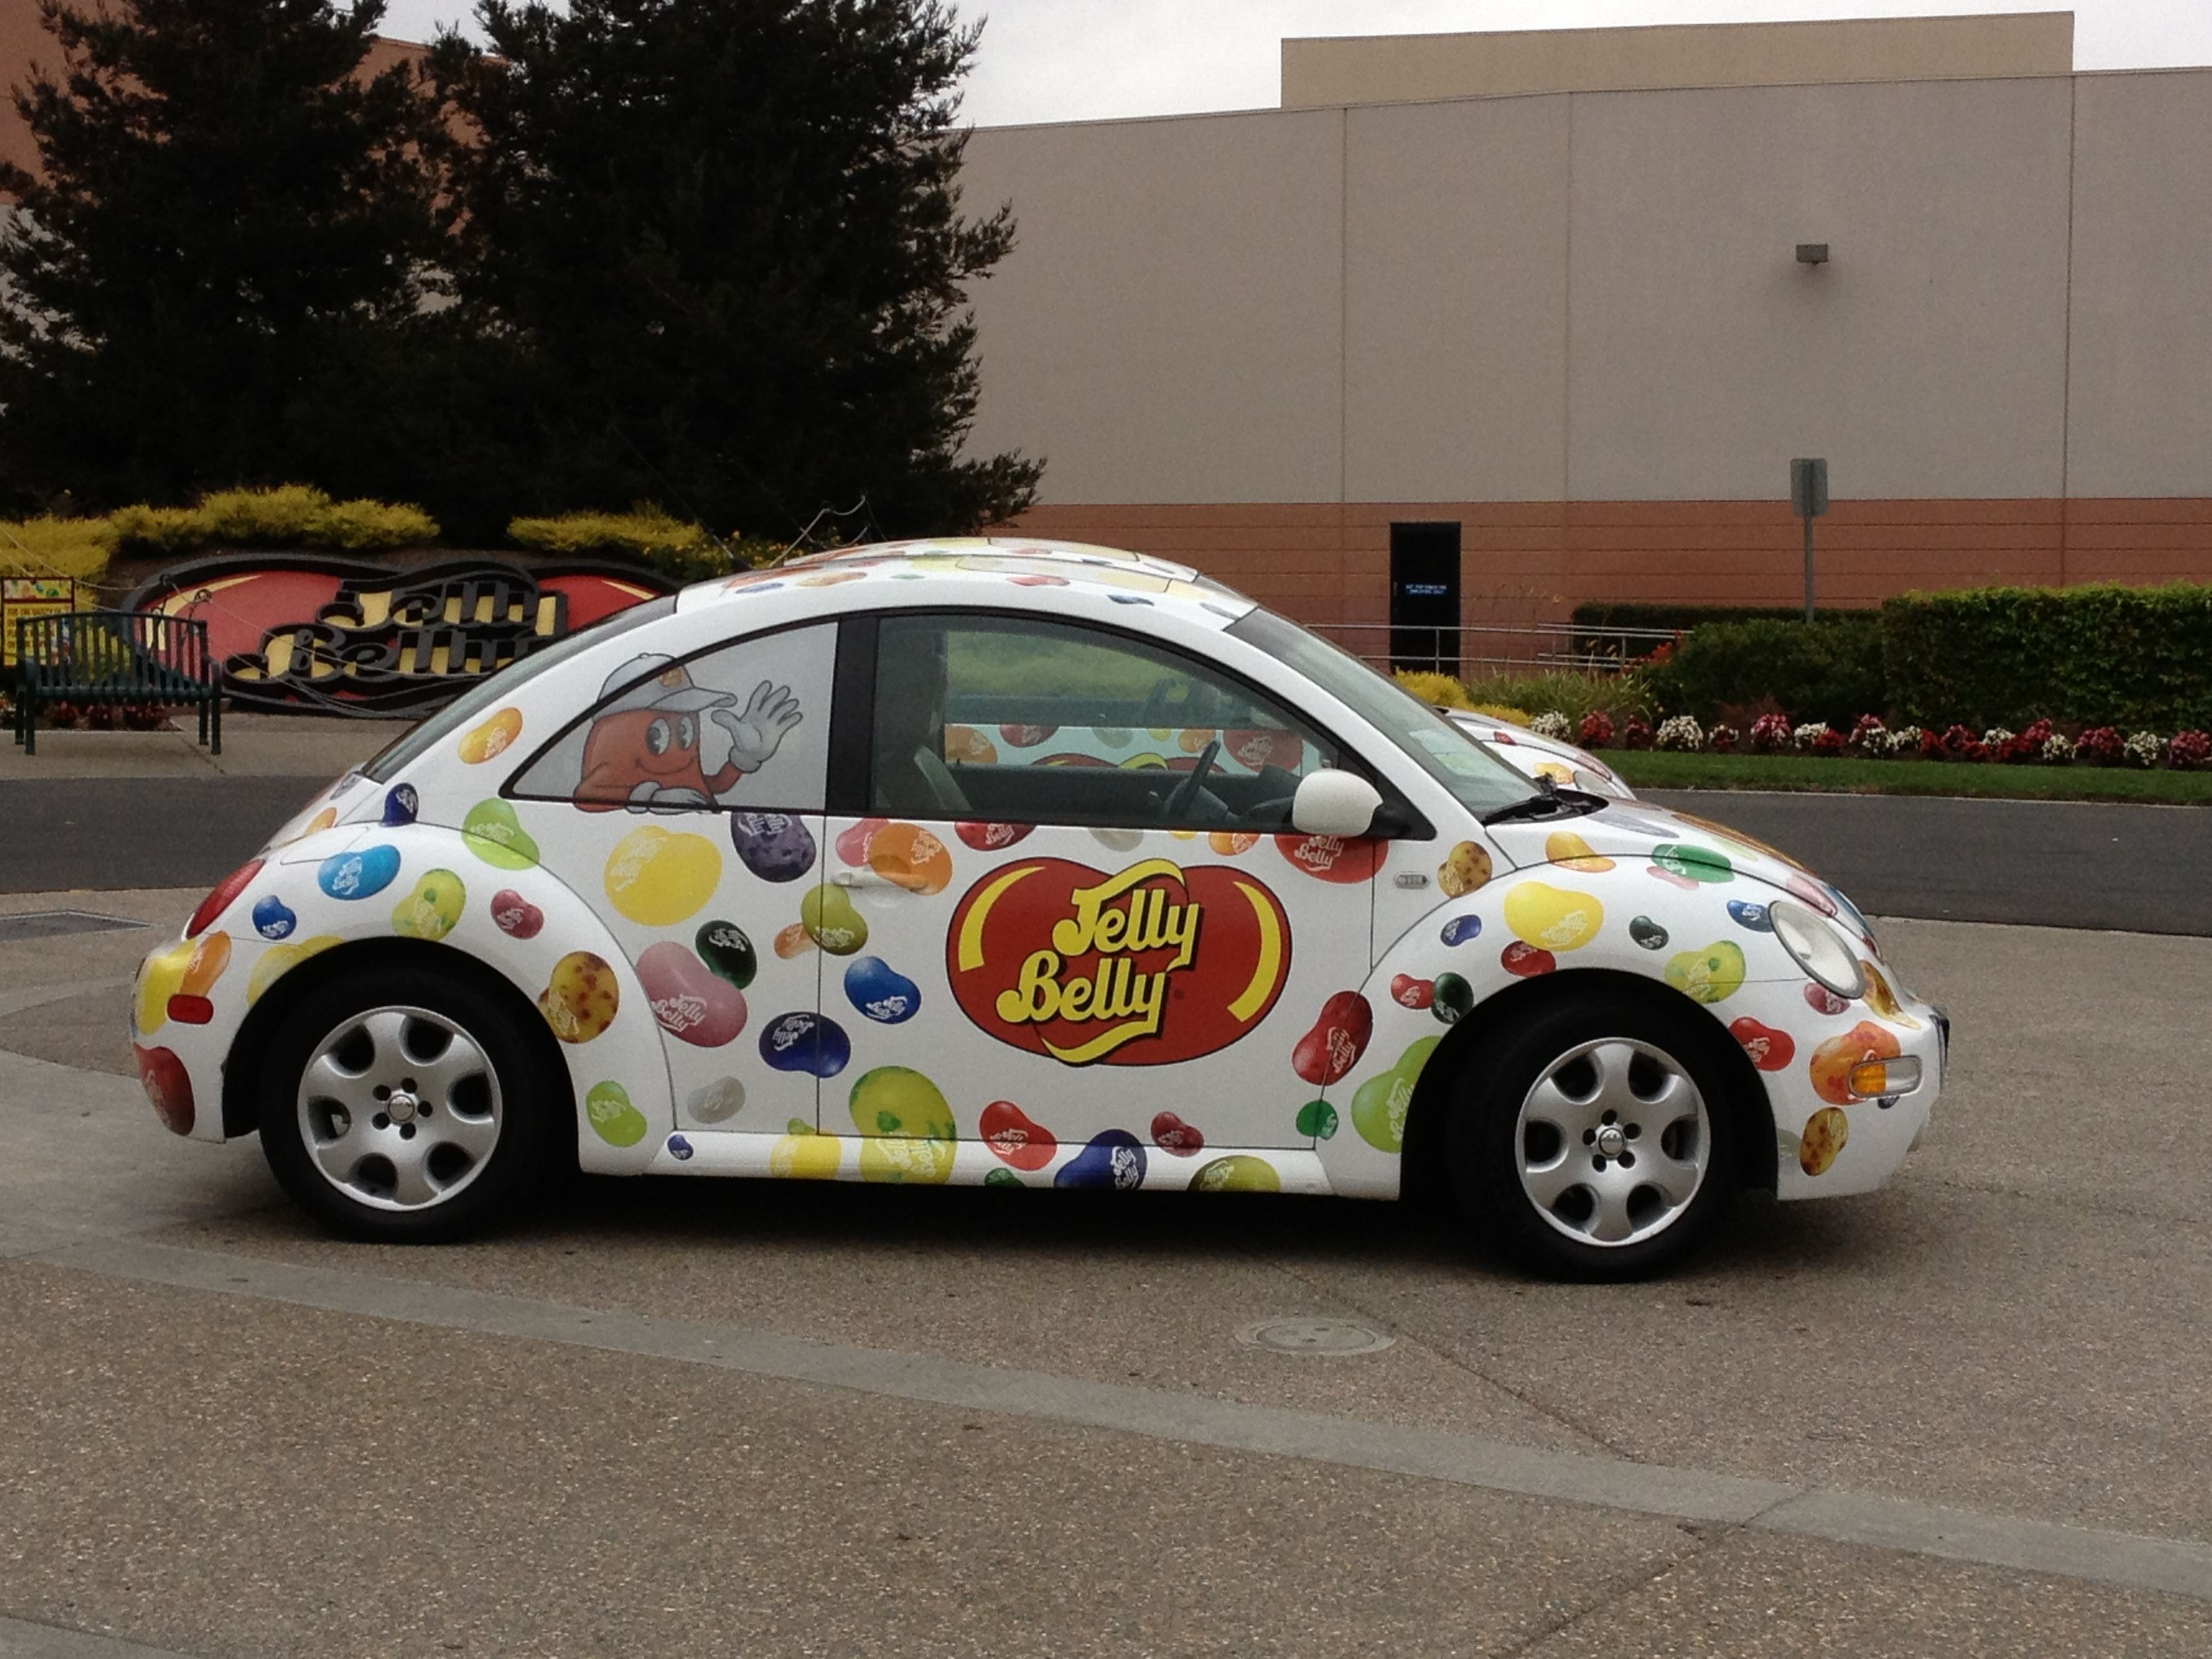 Jelly belly car wild rides pinterest cars